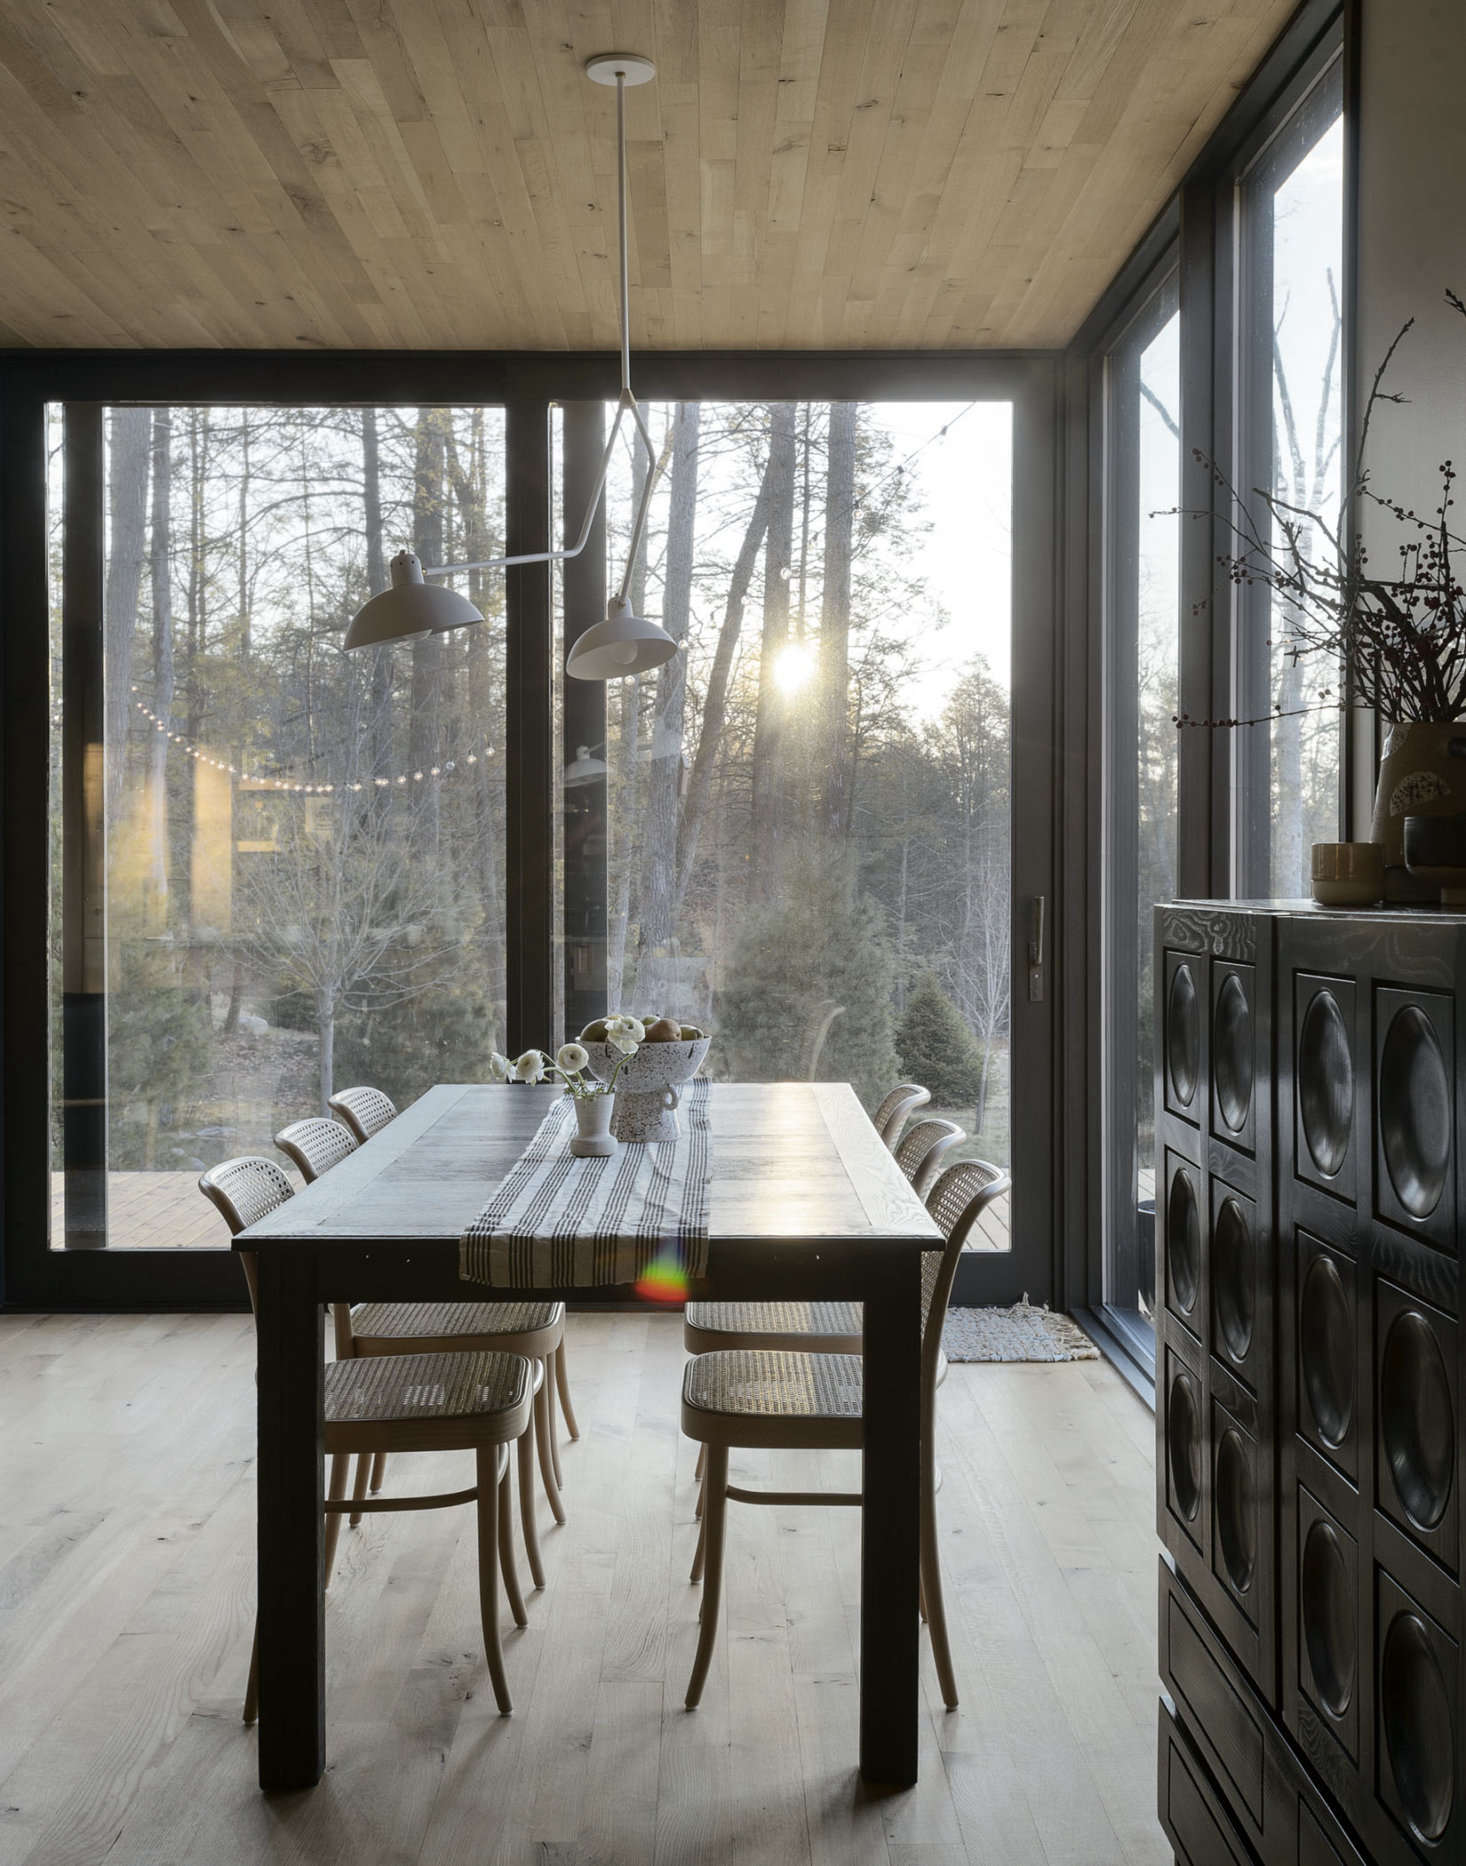 Floor-to-ceiling windows in much of the open living space put the focus squarely on the outdoors. &#8